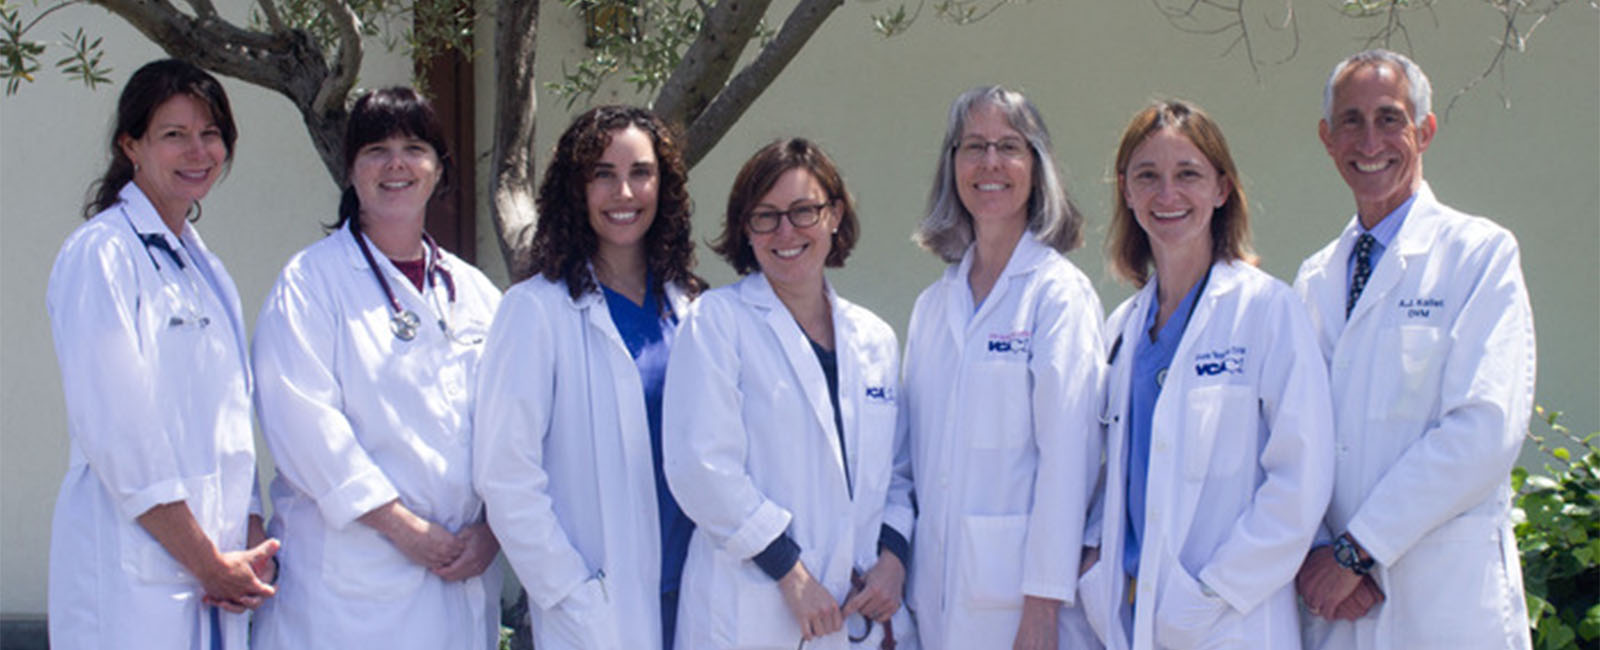 Homepage Team Picture of VCA Madera Pet Hospital